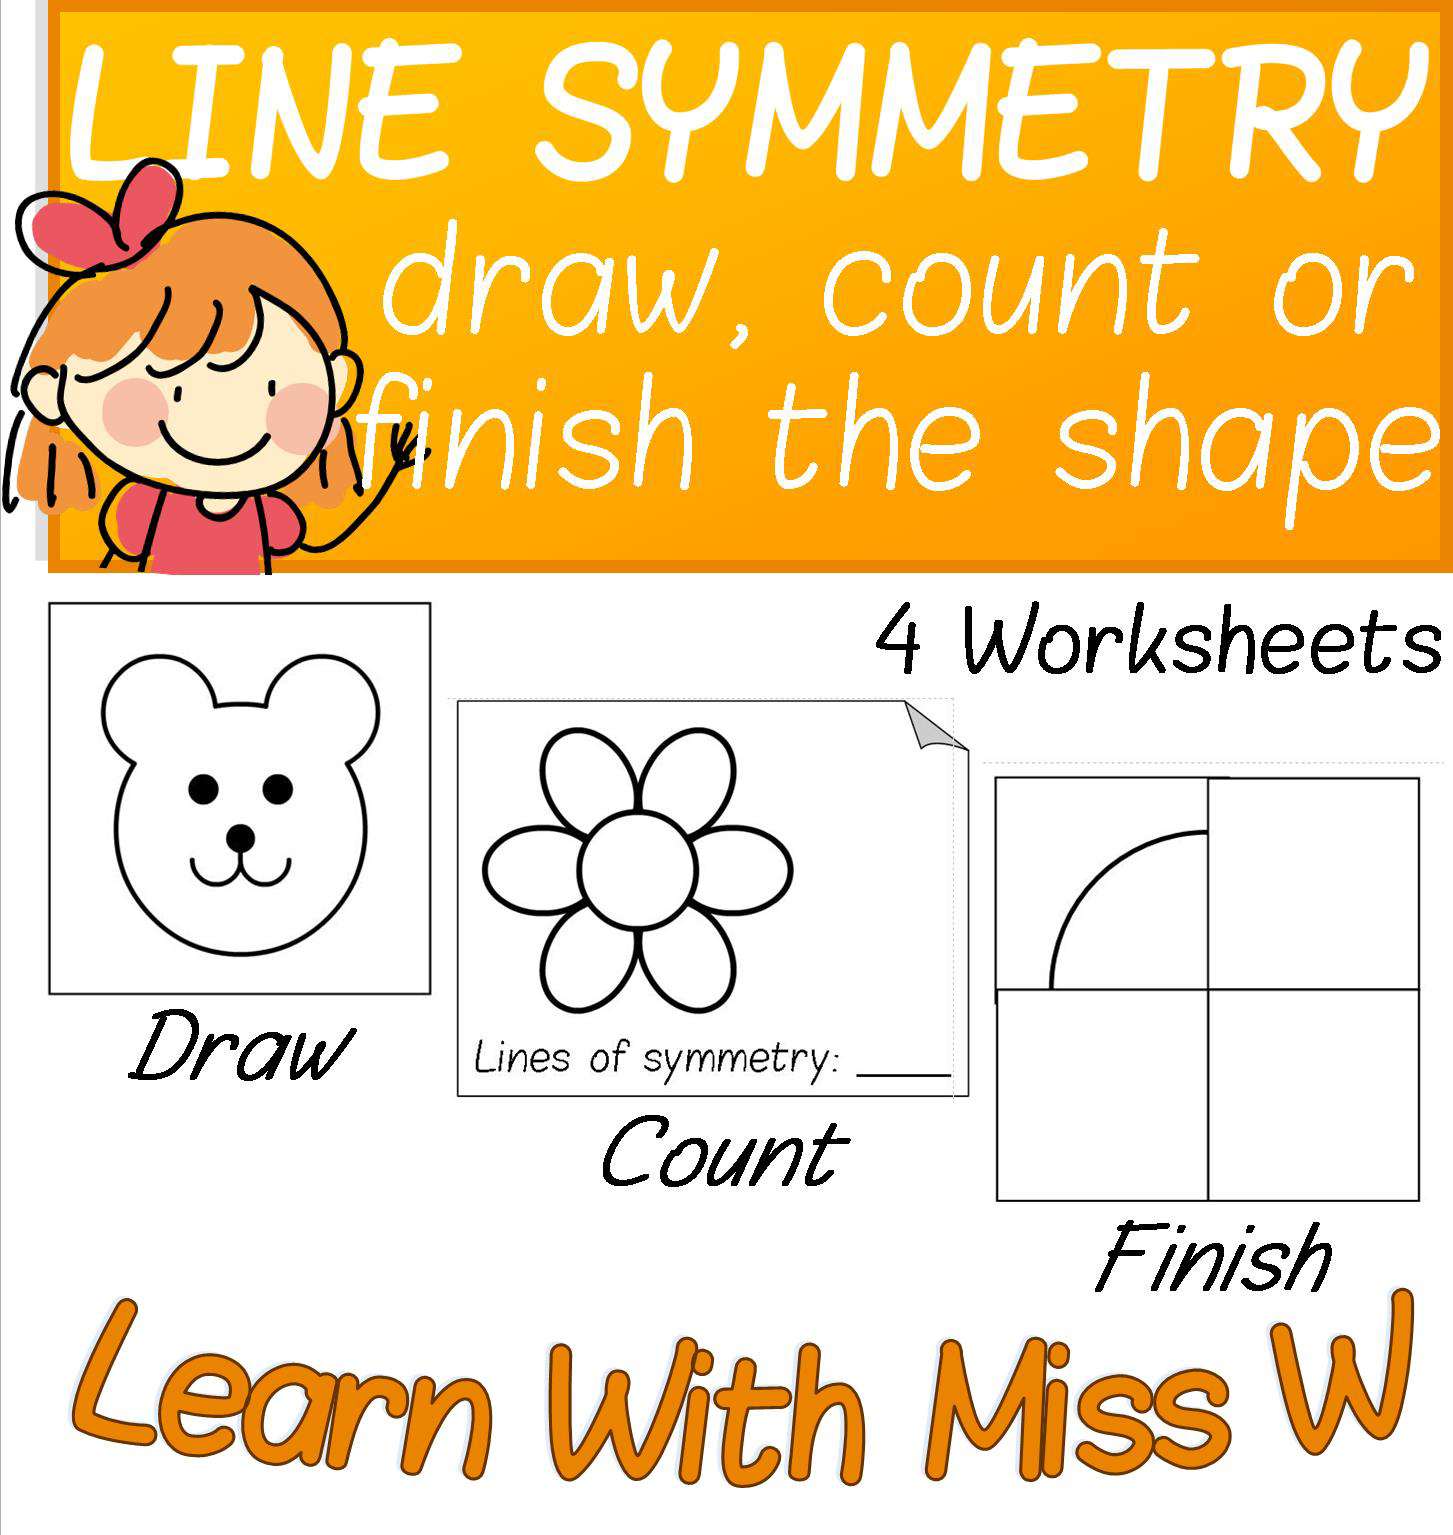 4 Differentiated Worksheets About Lines Of Symmetry Tasks